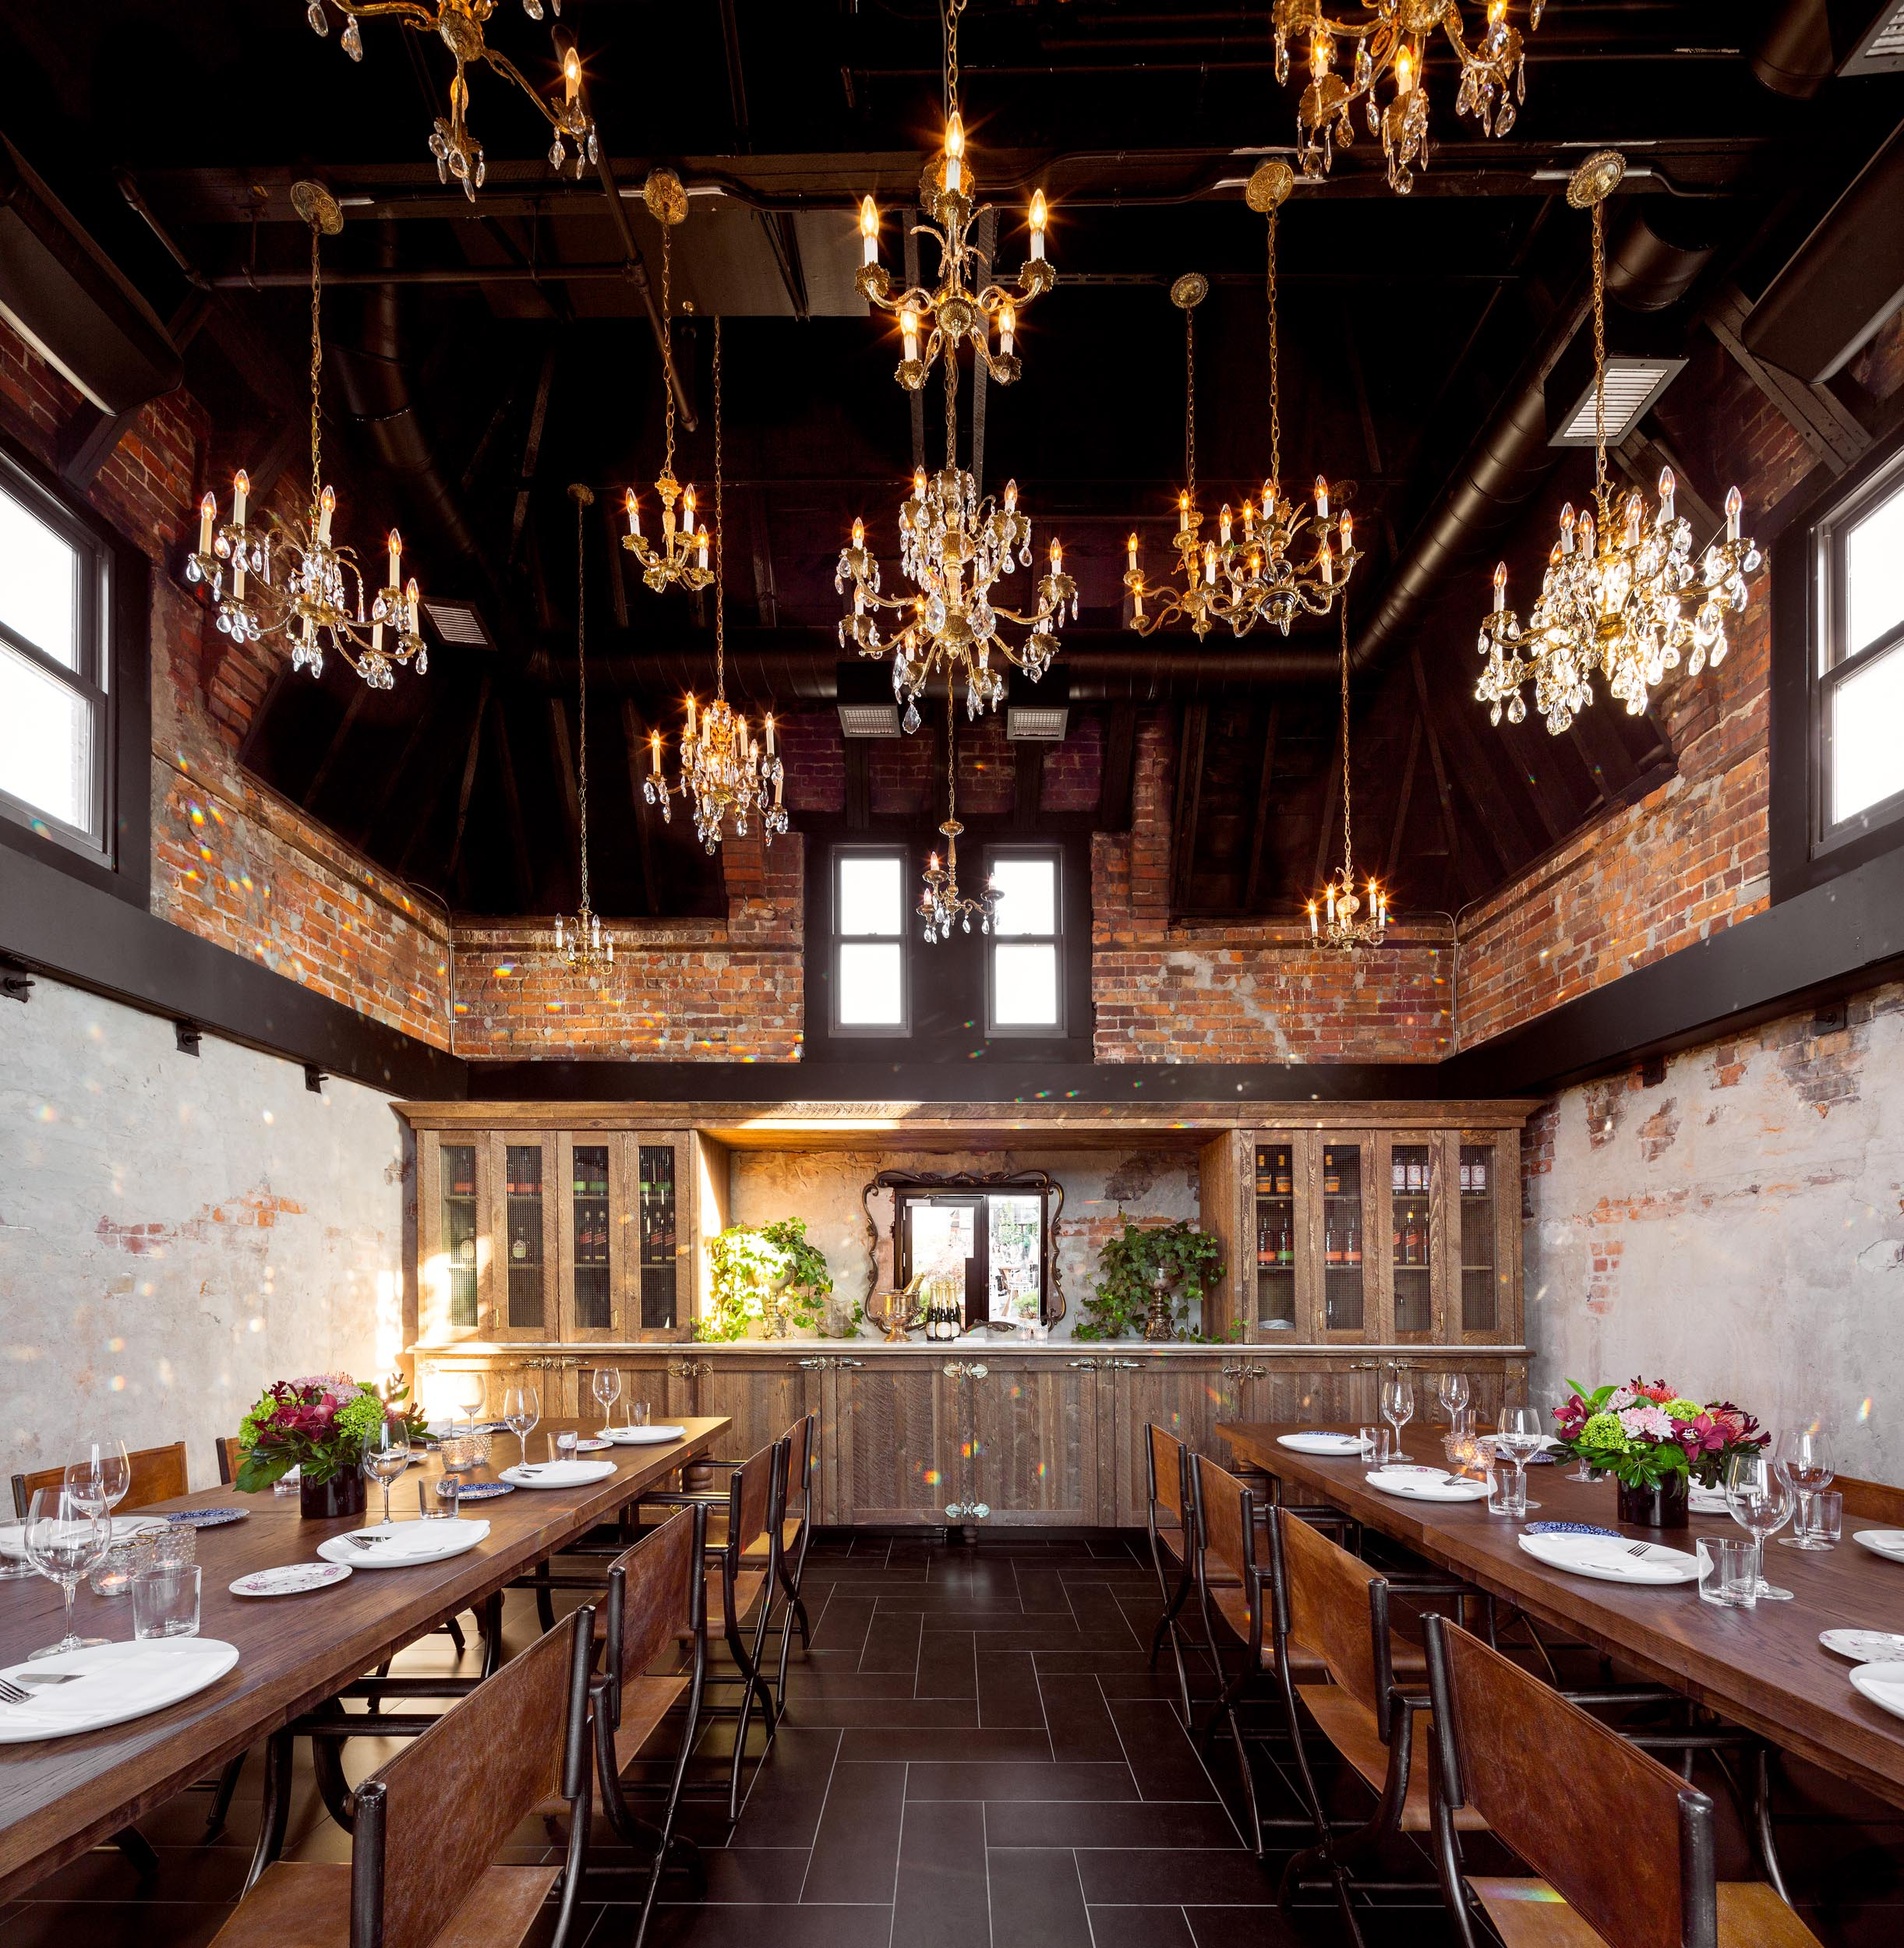 Broadview Hotel Private Dinning Room Interior Design by Design Agency Professional Photos by Worker Bee Supply